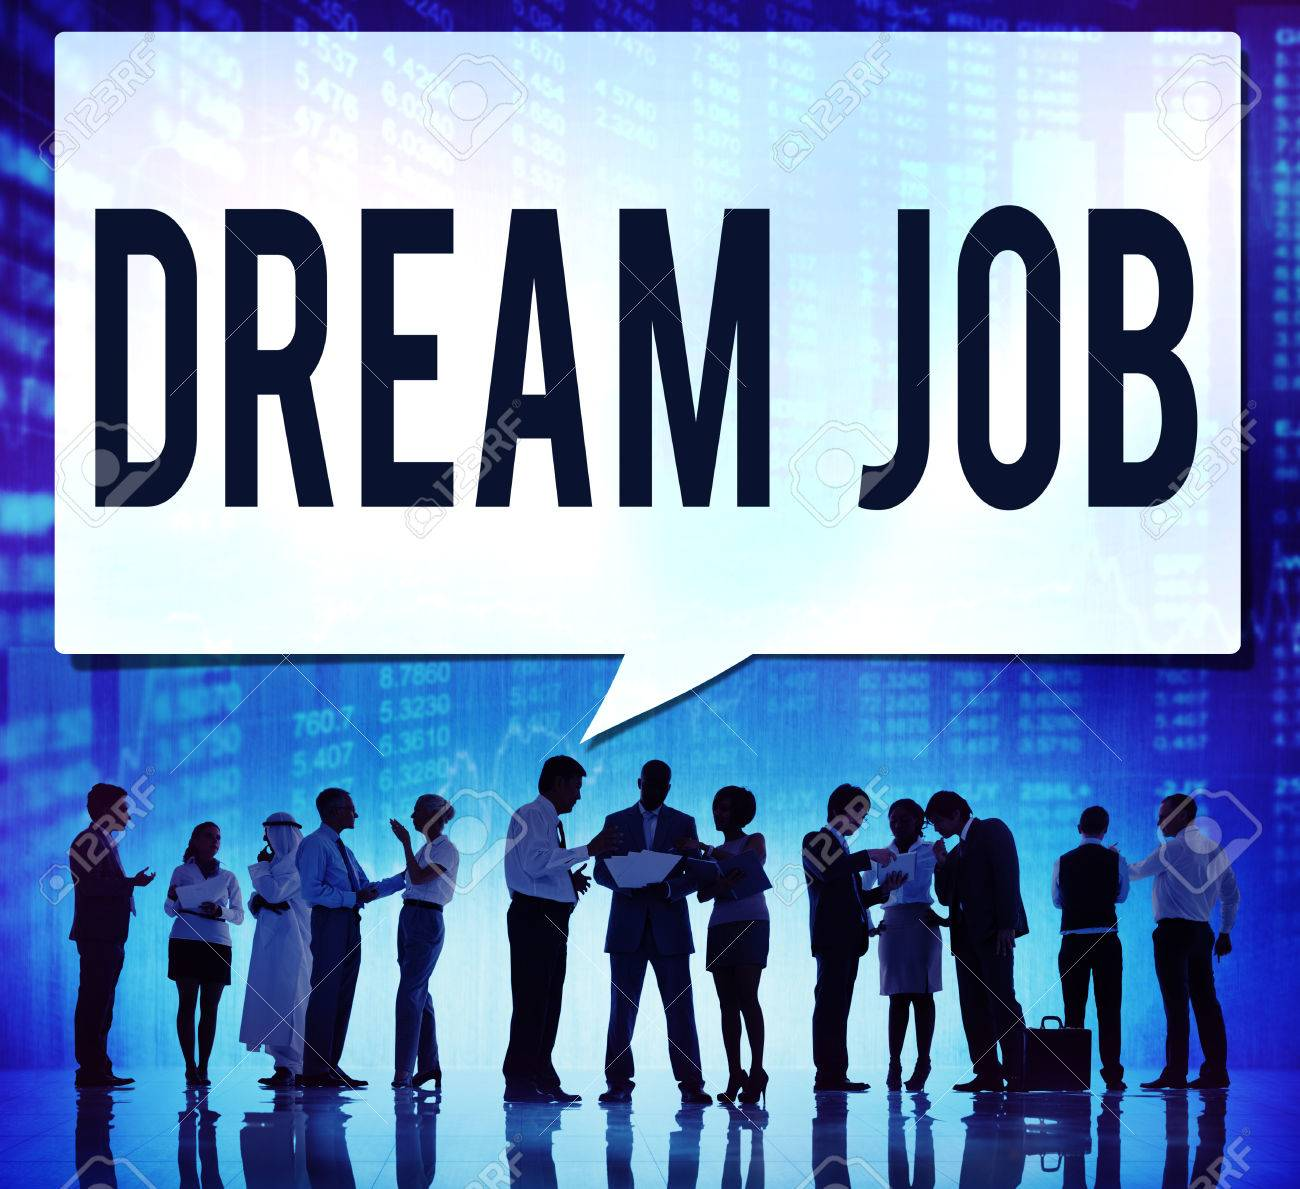 dream job occupation career aspiration concept stock photo dream job occupation career aspiration concept stock photo 44684571